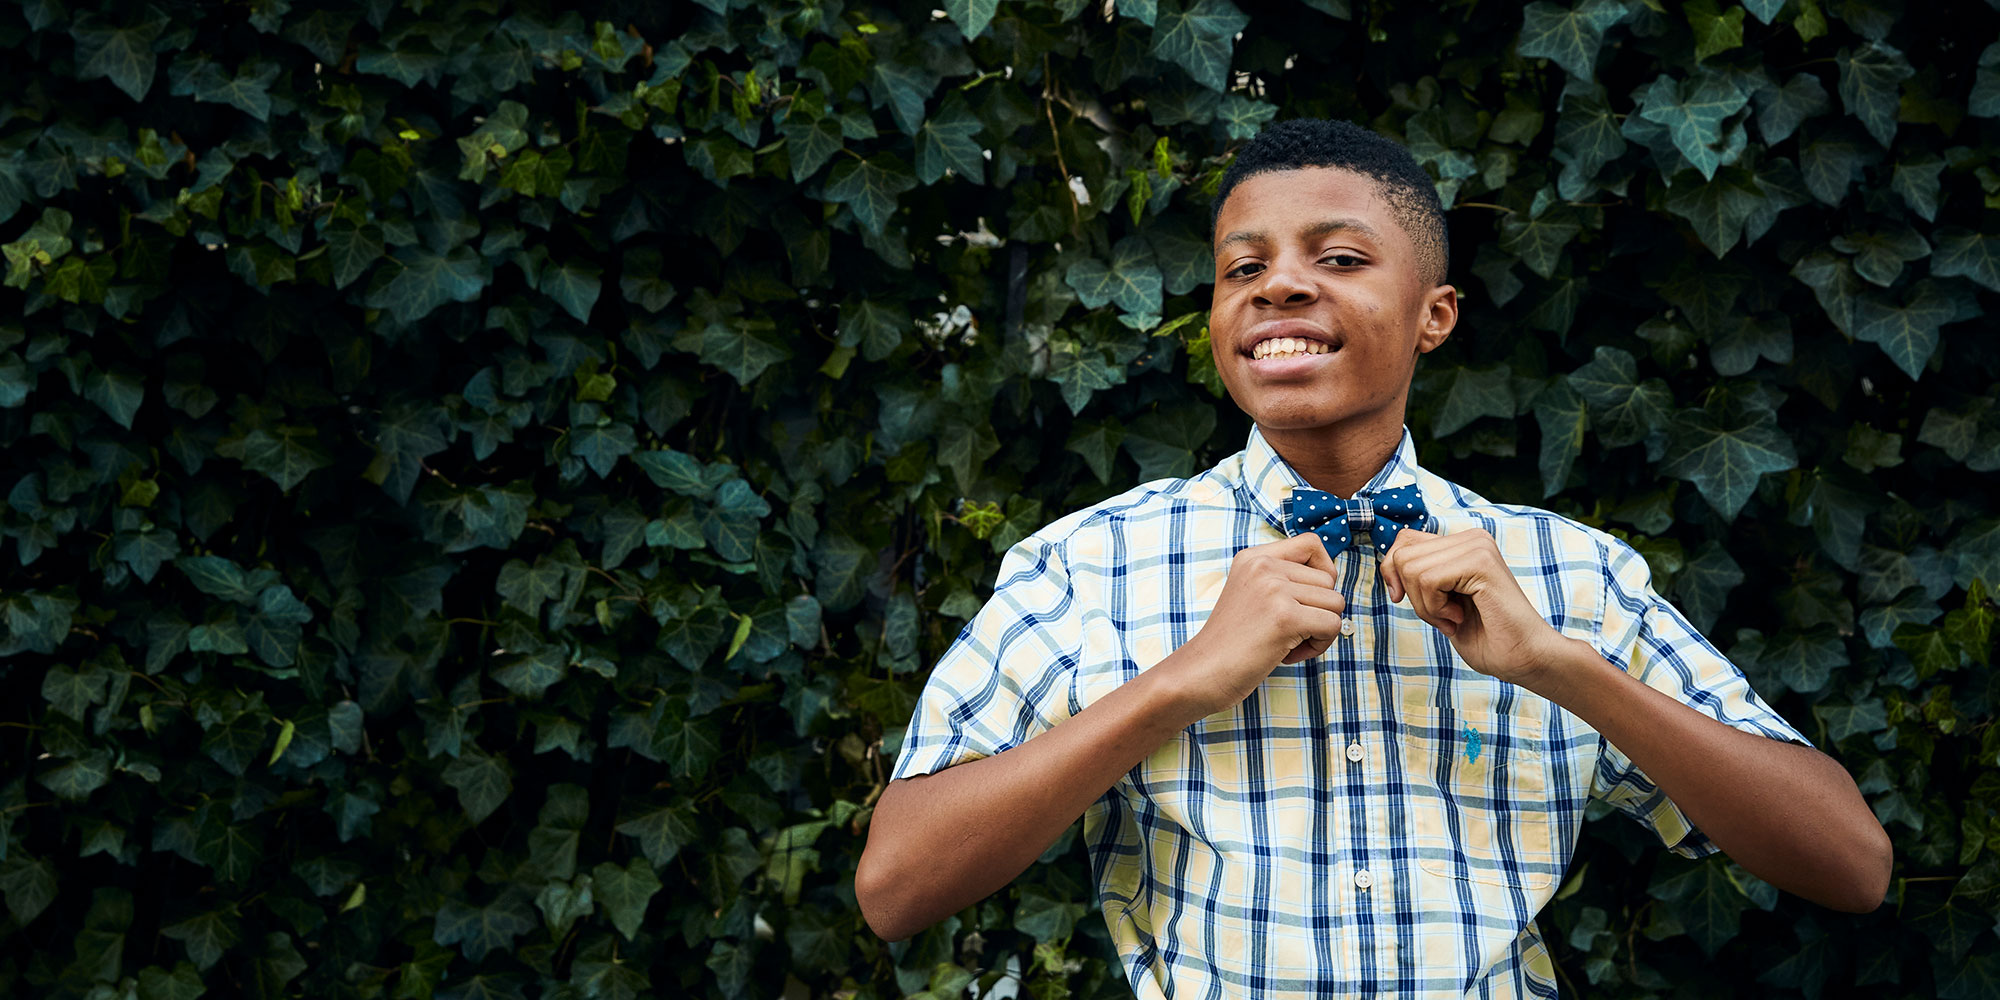 young man proudly showing off a blue polkadot bowtie